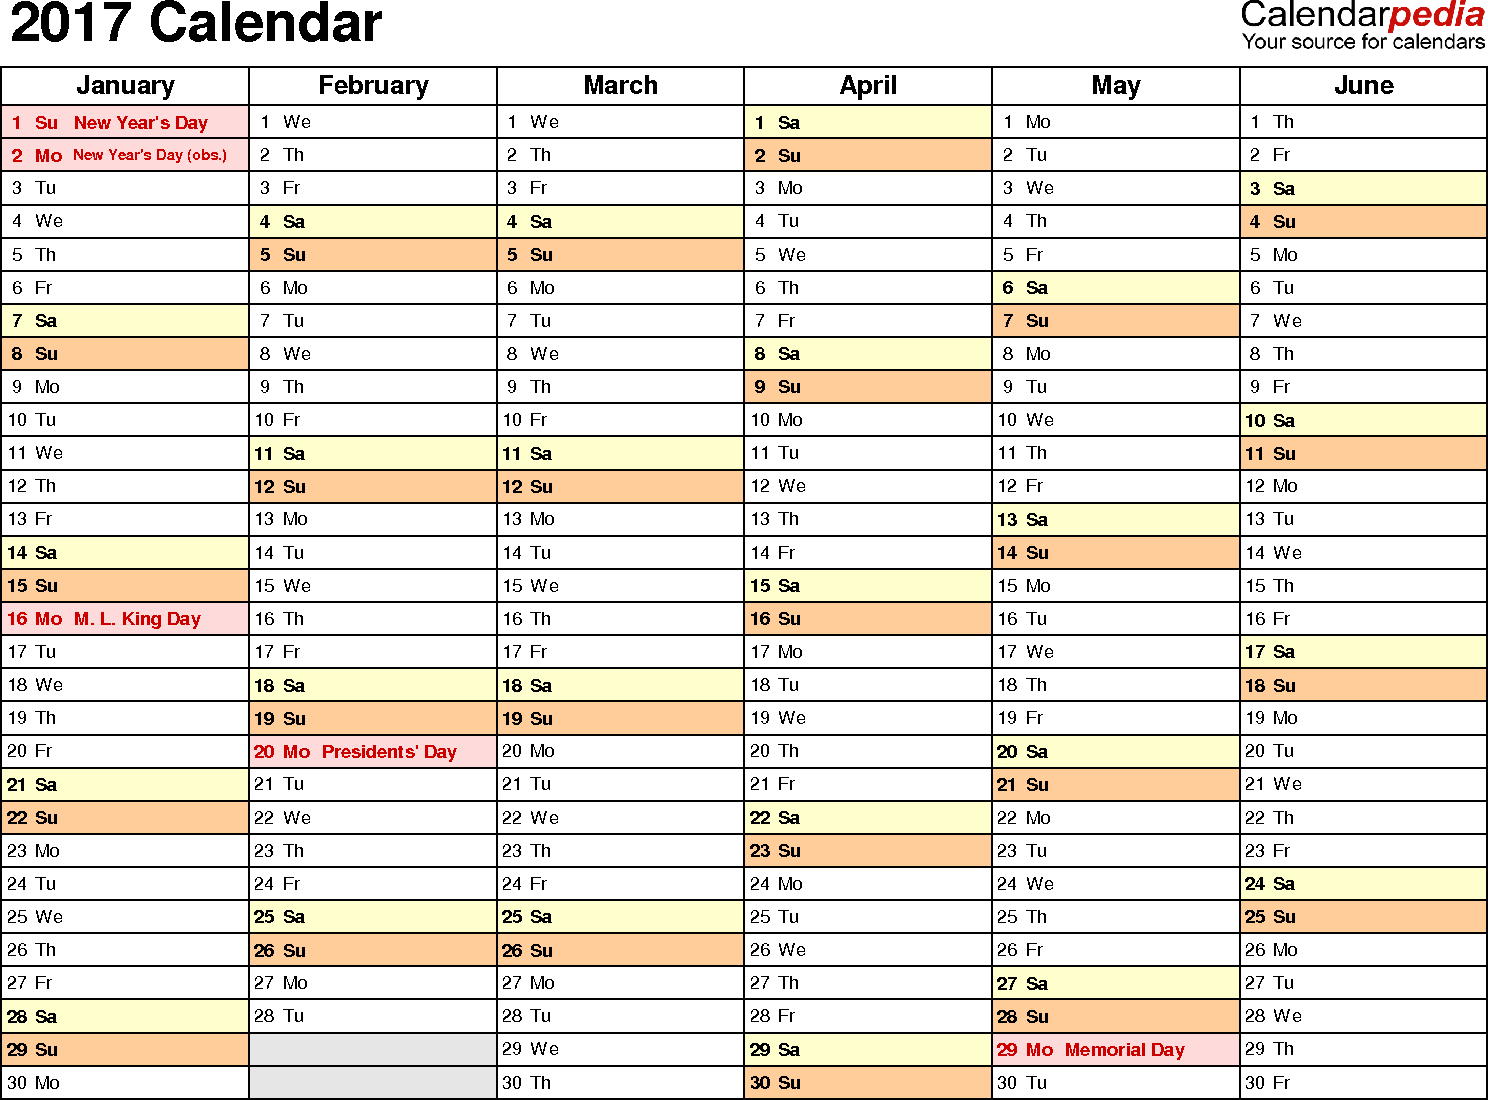 Ediblewildsus  Terrific  Calendar  Download  Free Printable Excel Templates Xls With Glamorous Template   Calendar For Excel Months Horizontally  Pages Landscape Orientation With Charming Merge Two Excel Workbooks Also Password Protecting Excel In Addition Microsoft Excel How To And Excel Int Function As Well As Excel Templates For Mac Additionally Excel Staffing Albuquerque From Calendarpediacom With Ediblewildsus  Glamorous  Calendar  Download  Free Printable Excel Templates Xls With Charming Template   Calendar For Excel Months Horizontally  Pages Landscape Orientation And Terrific Merge Two Excel Workbooks Also Password Protecting Excel In Addition Microsoft Excel How To From Calendarpediacom